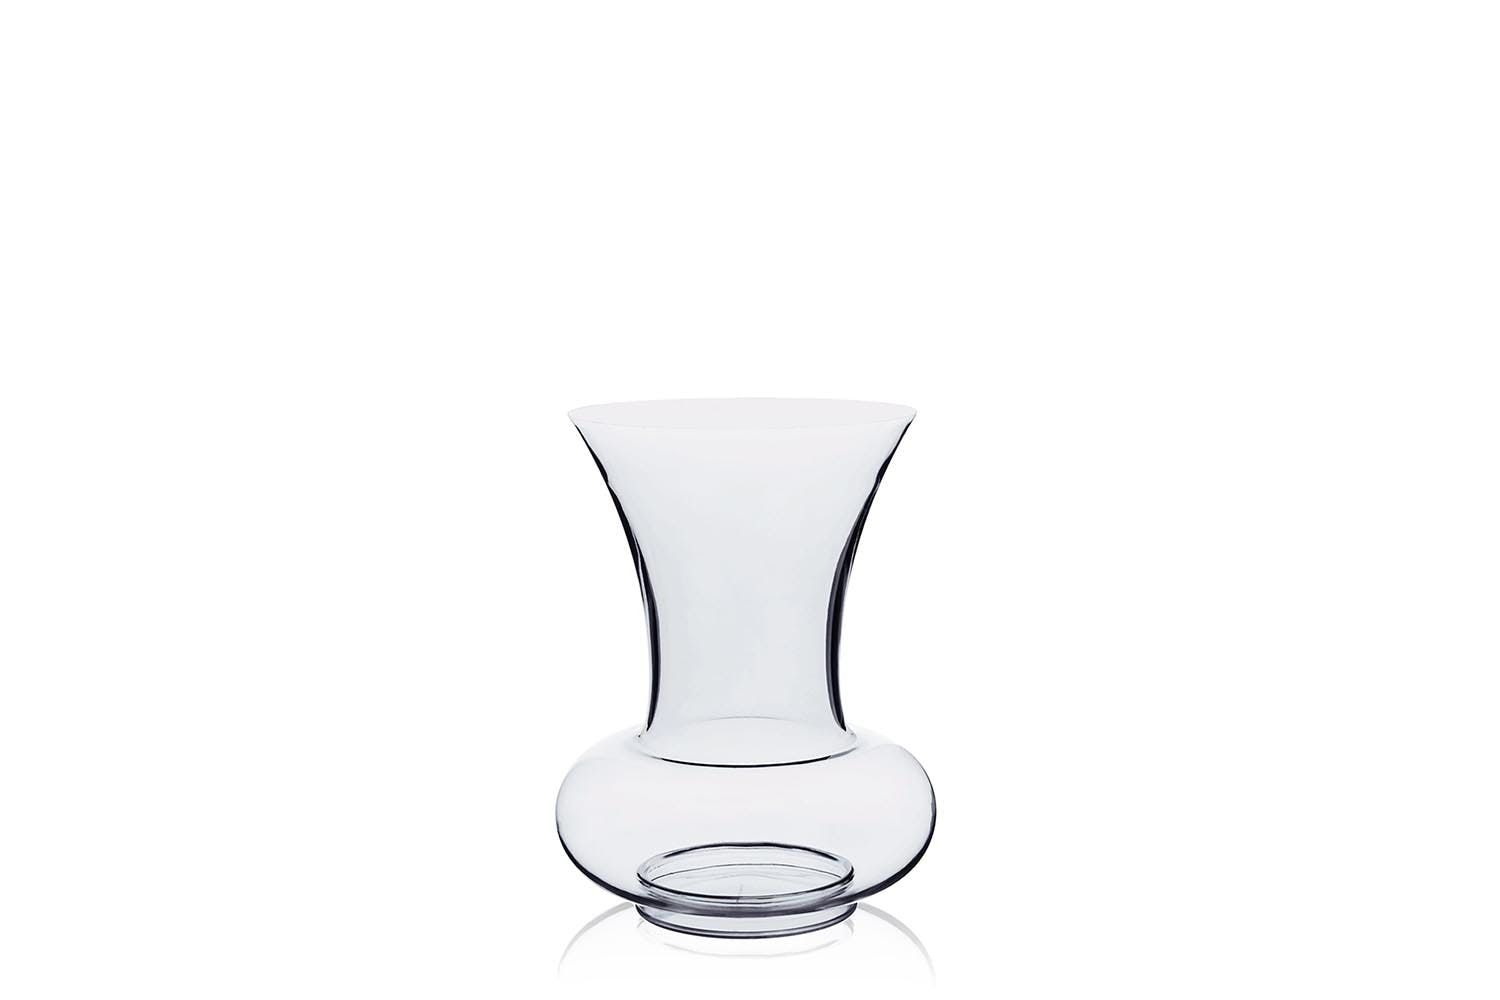 la boheme 2 vase by philippe starck for kartell space. Black Bedroom Furniture Sets. Home Design Ideas